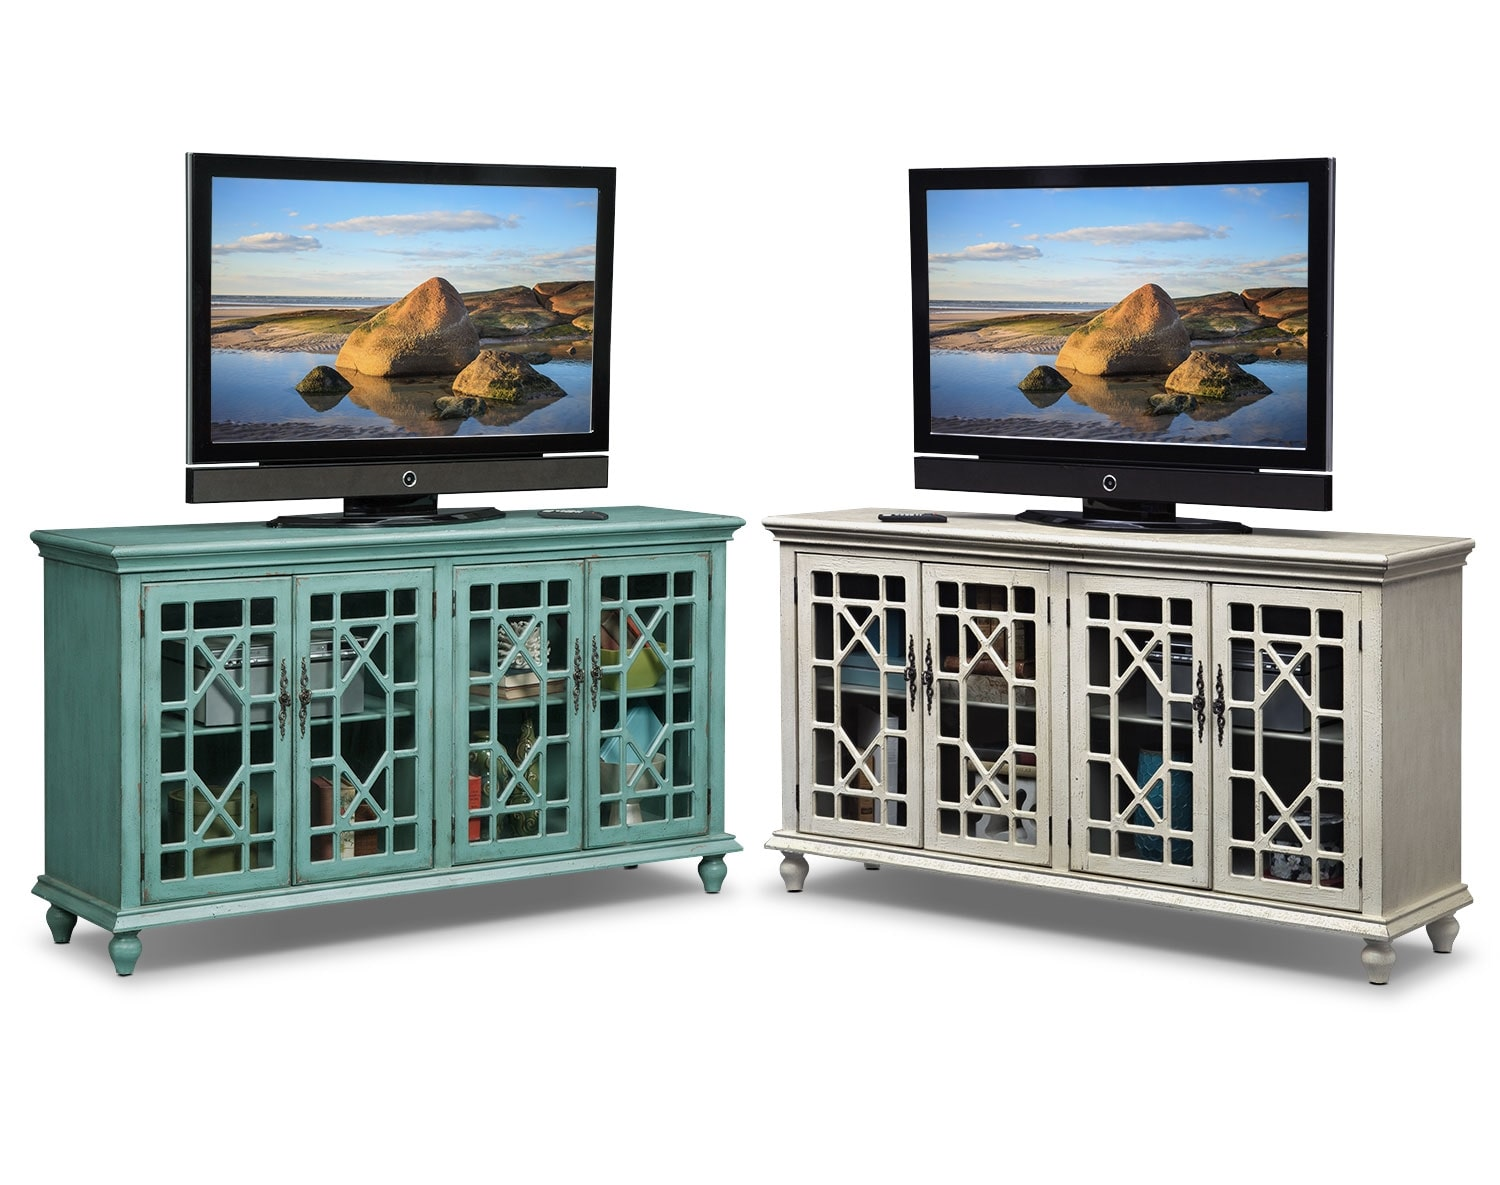 The Grenoble Media Credenza Collection